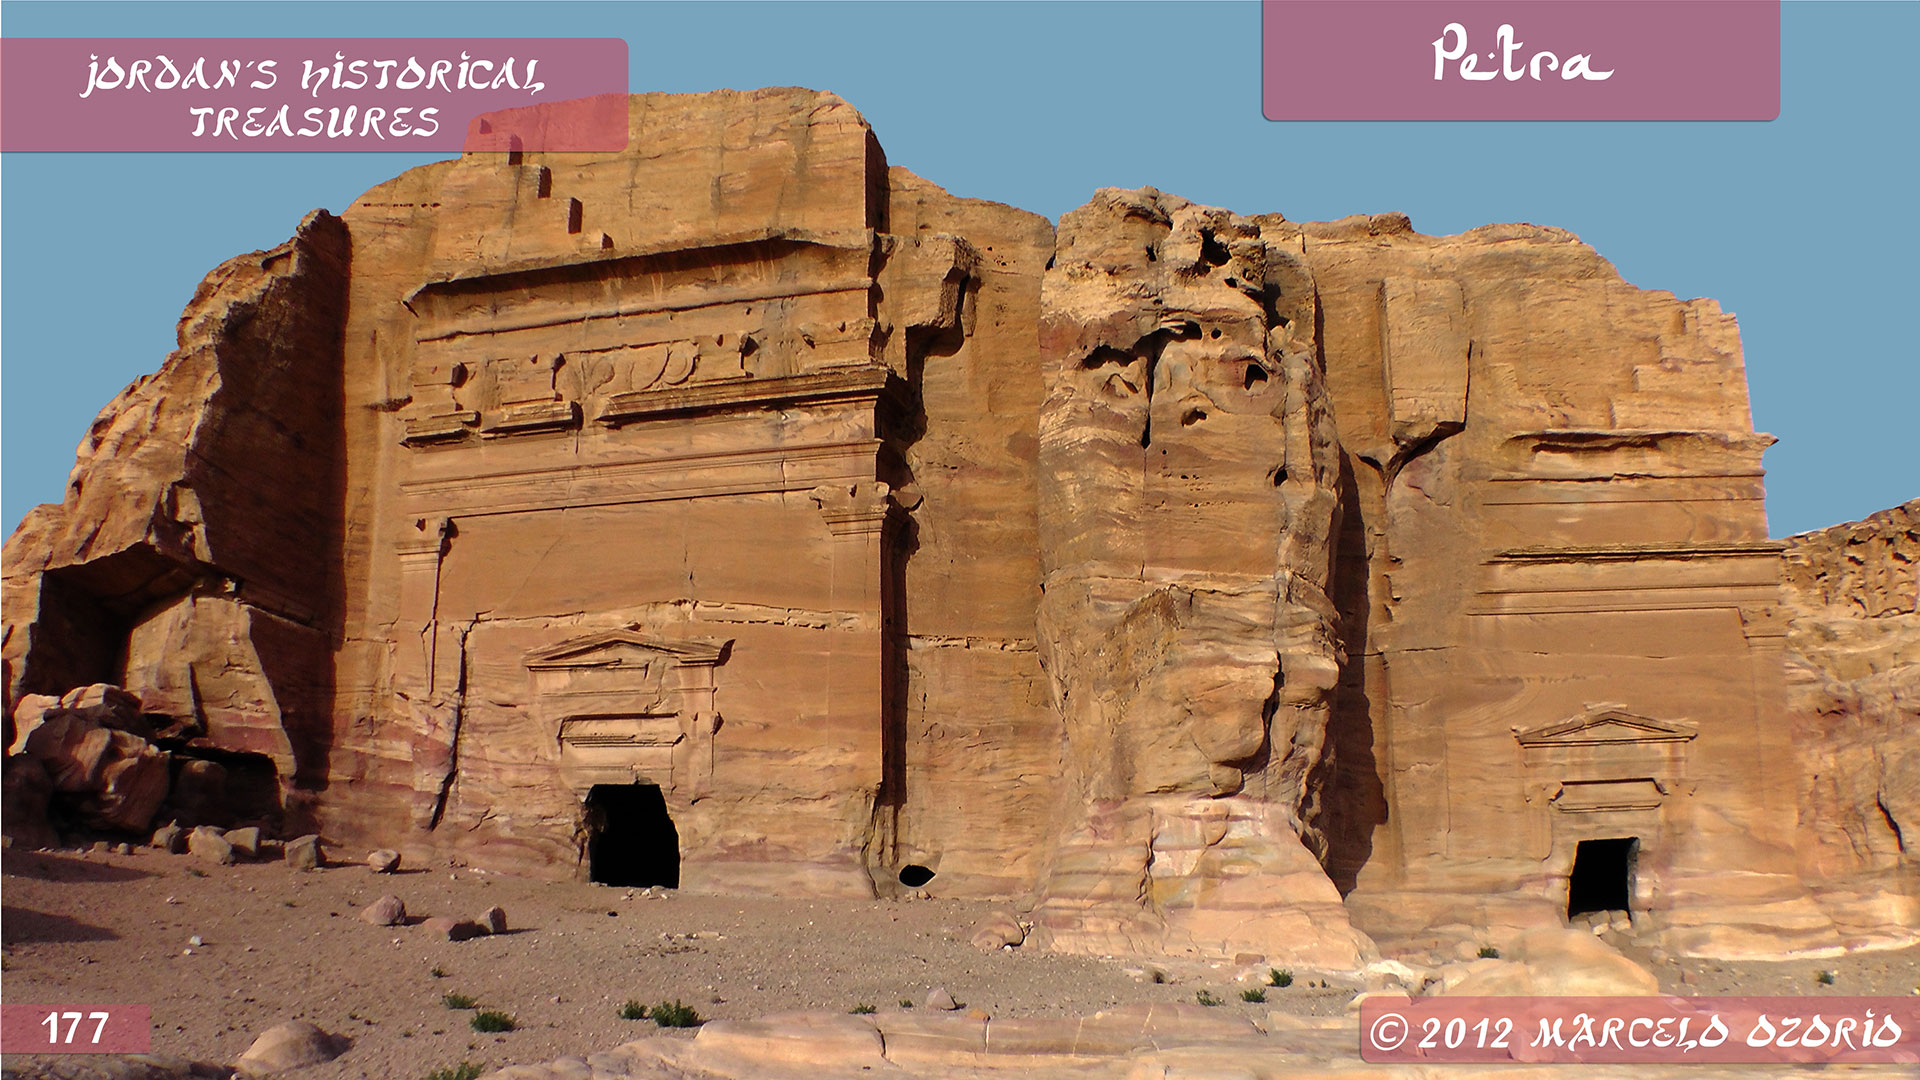 Petra Archaeological City Jordan 97 - The Astonishing Treasure at Petra - Jordan